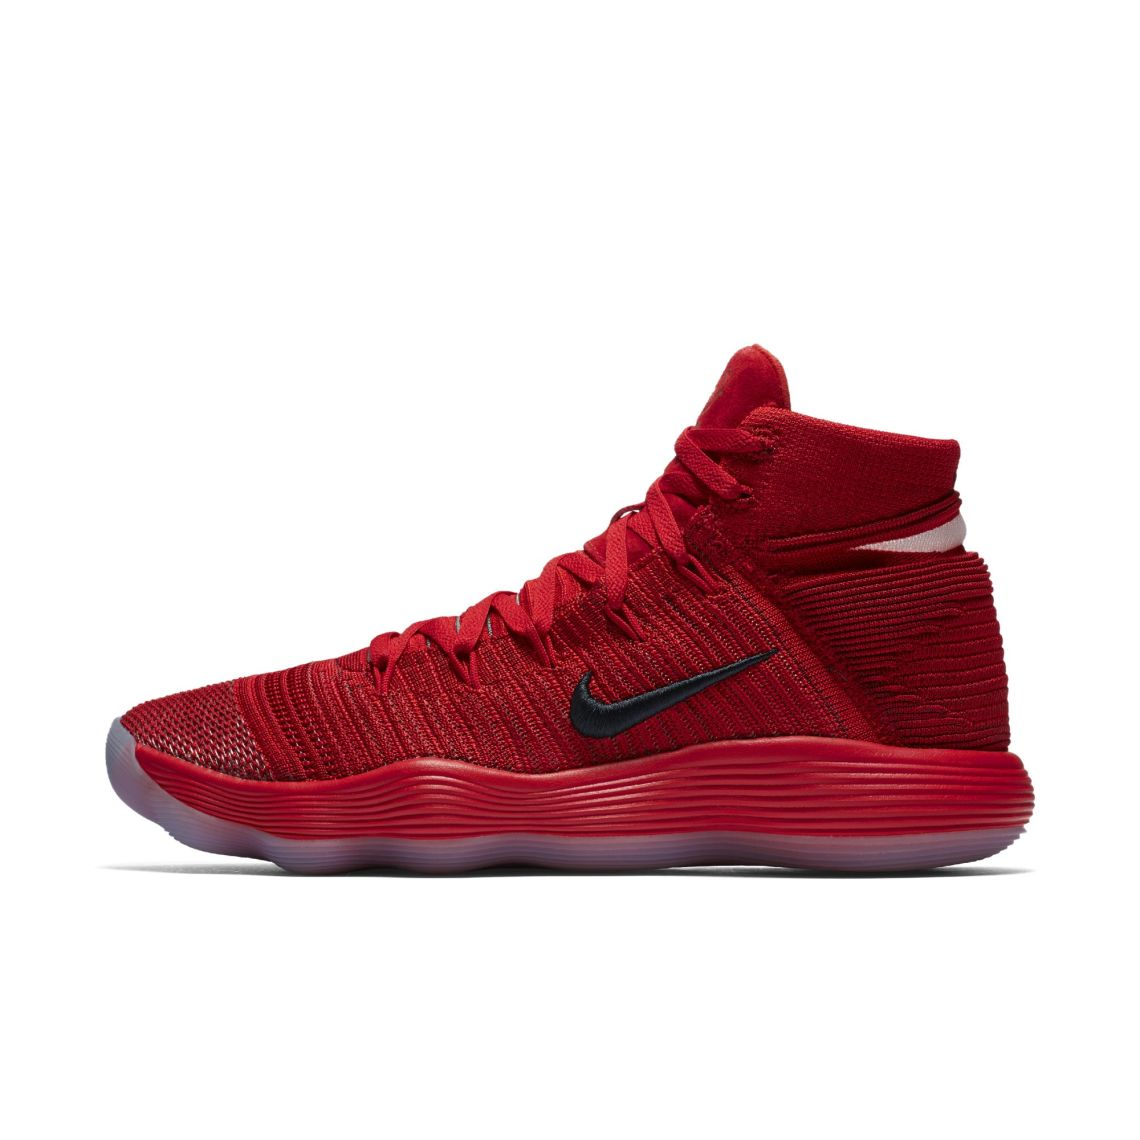 "Nike REACT Hyperdunk 2017 ""University Red"""